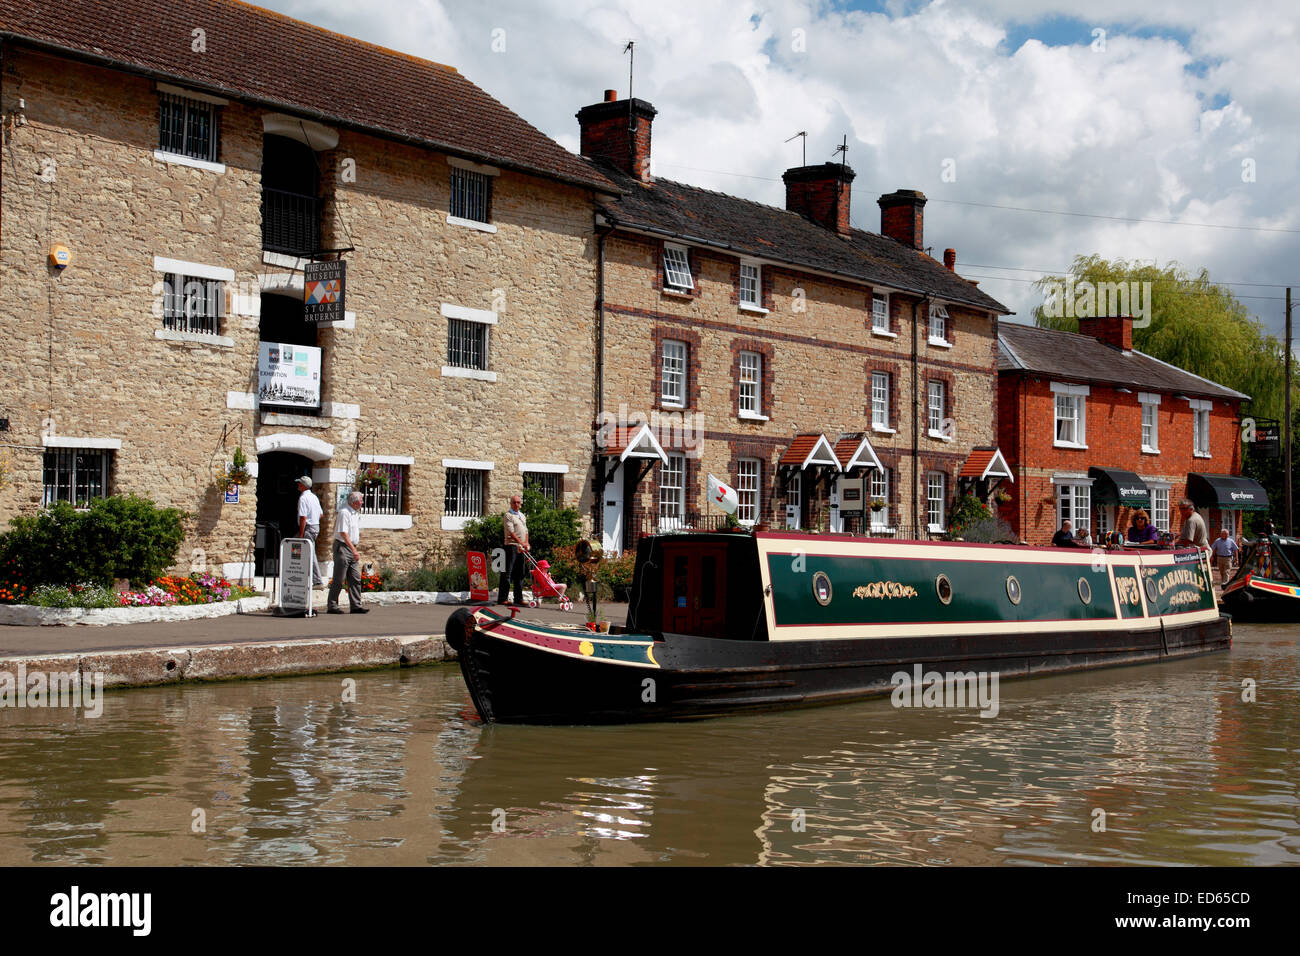 A narrowboat on the Grand Union Canal in Northamptonshire outside the Stoke Bruerne Canal Museum - Stock Image